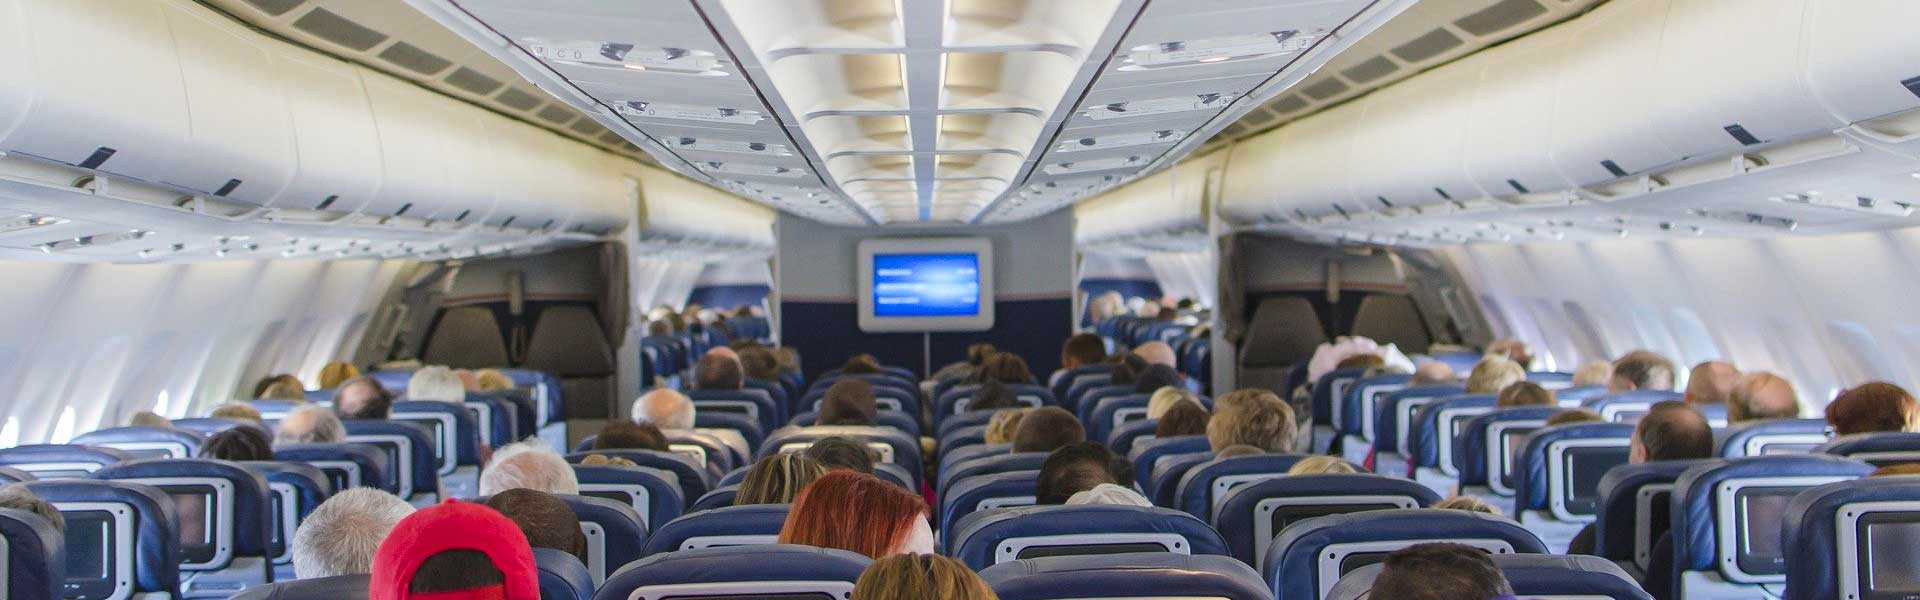 Things to do on a long haul flight - Shows an air-plane cabin